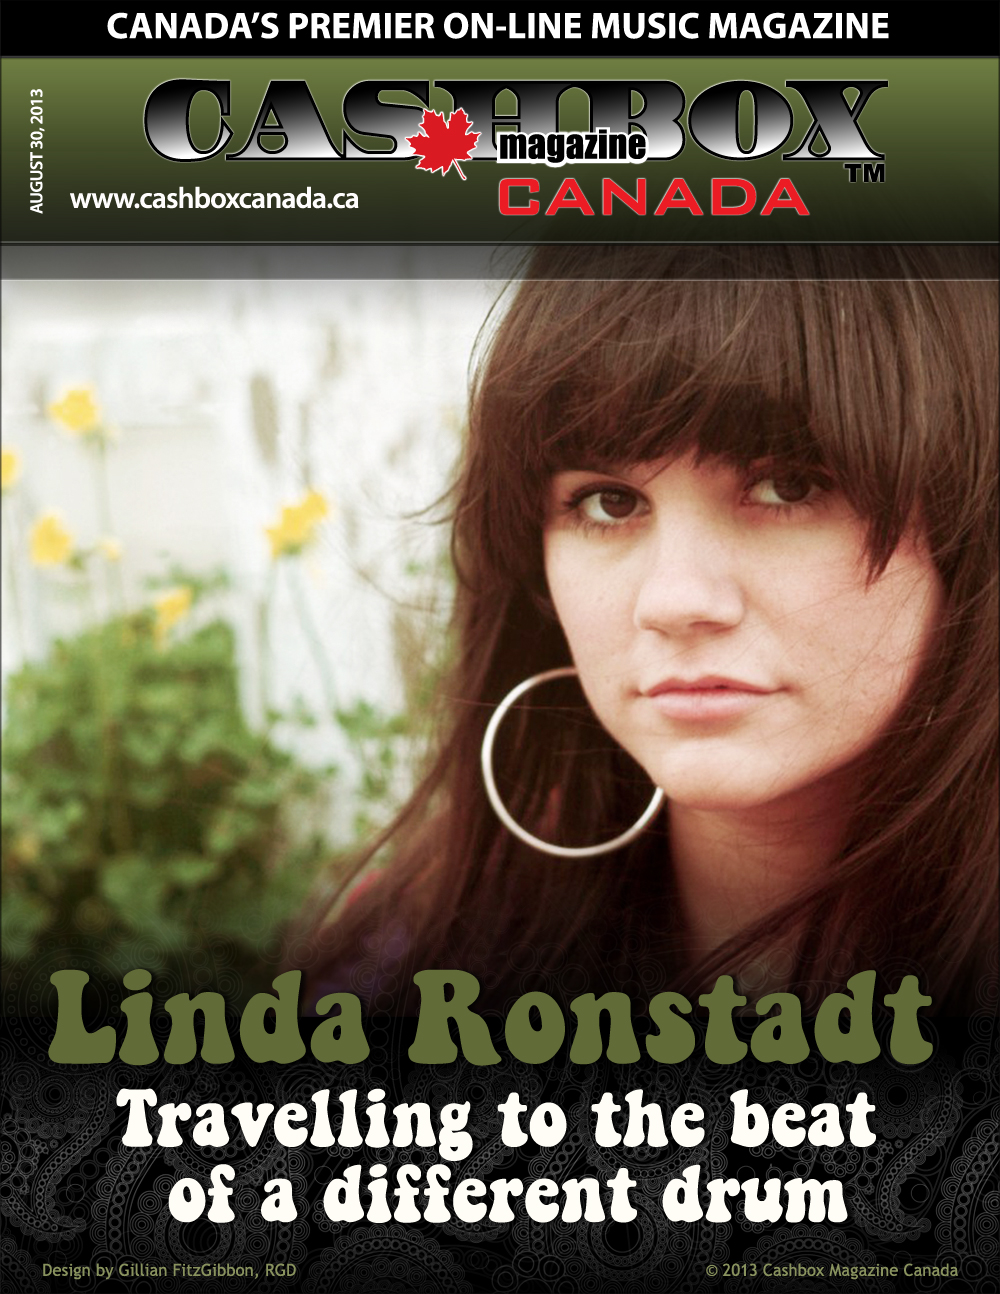 Linda Ronstadt Travelling To The Sound of a Different Drum